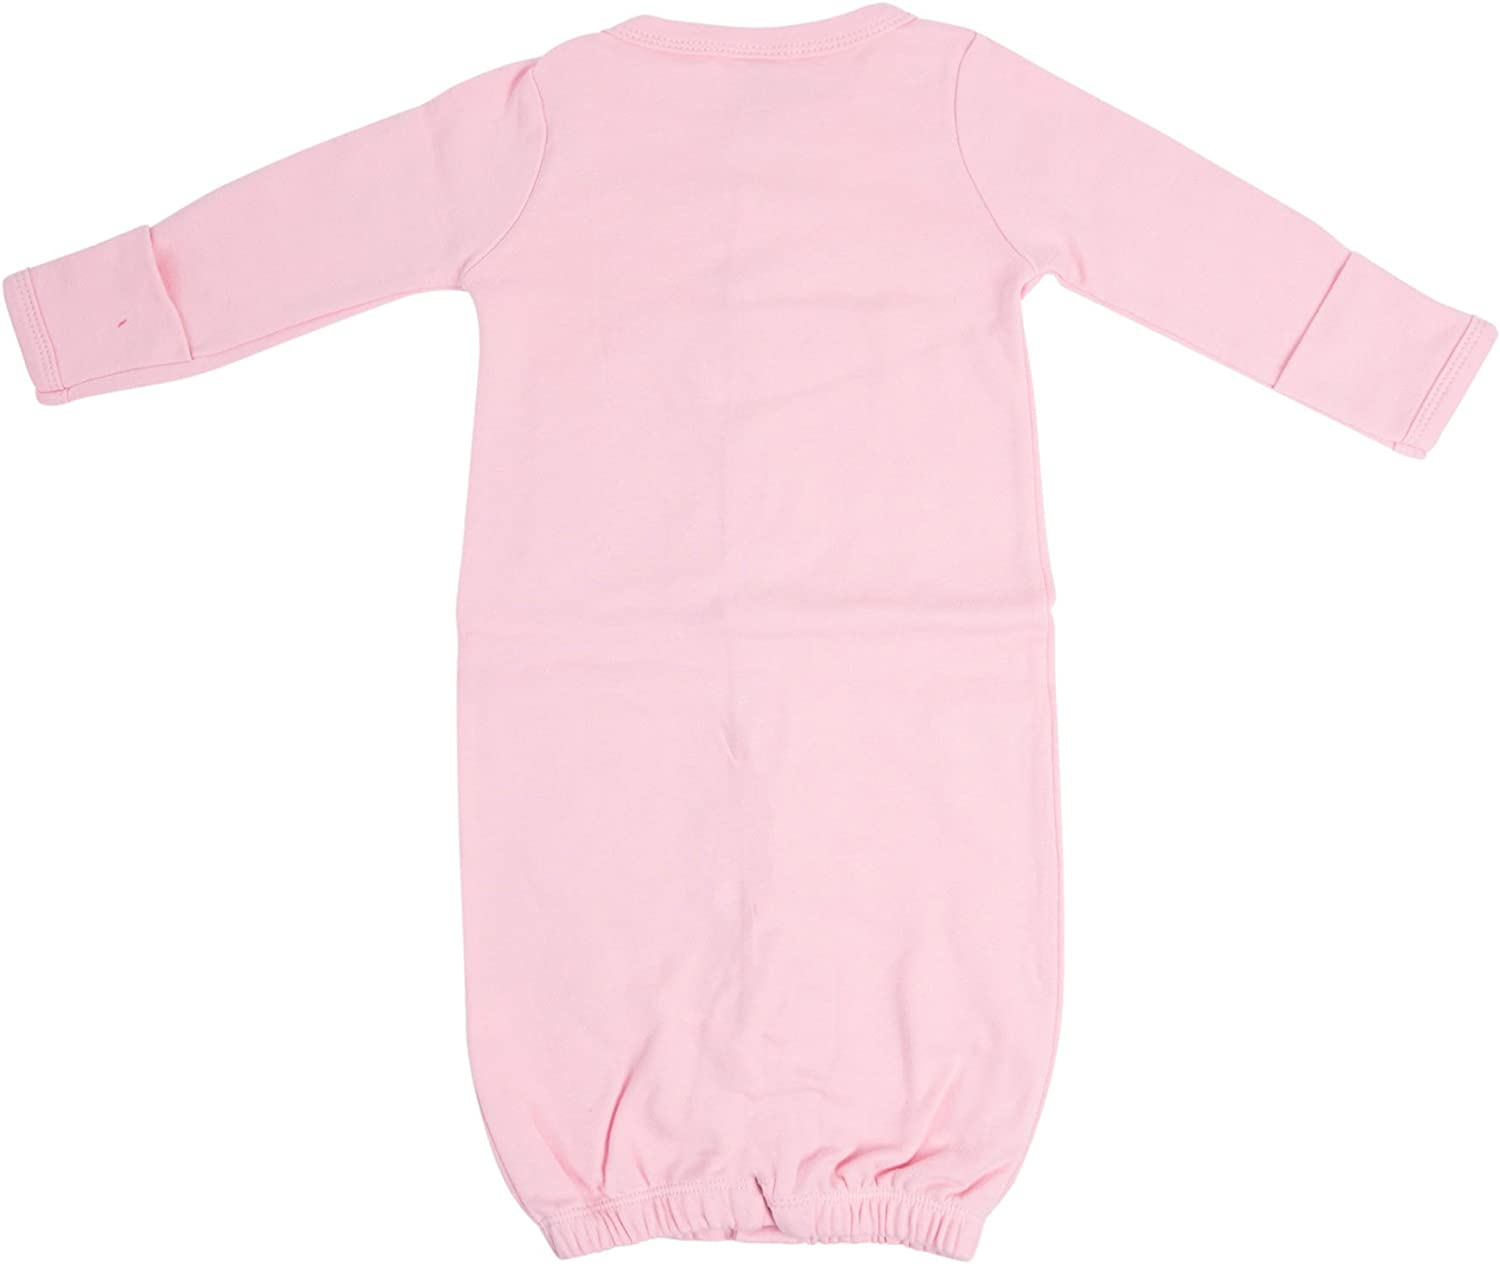 0-6 Months, Pink Laughing Giraffe Baby Long Sleeve Convertible Gown with Fold-Over Mittens